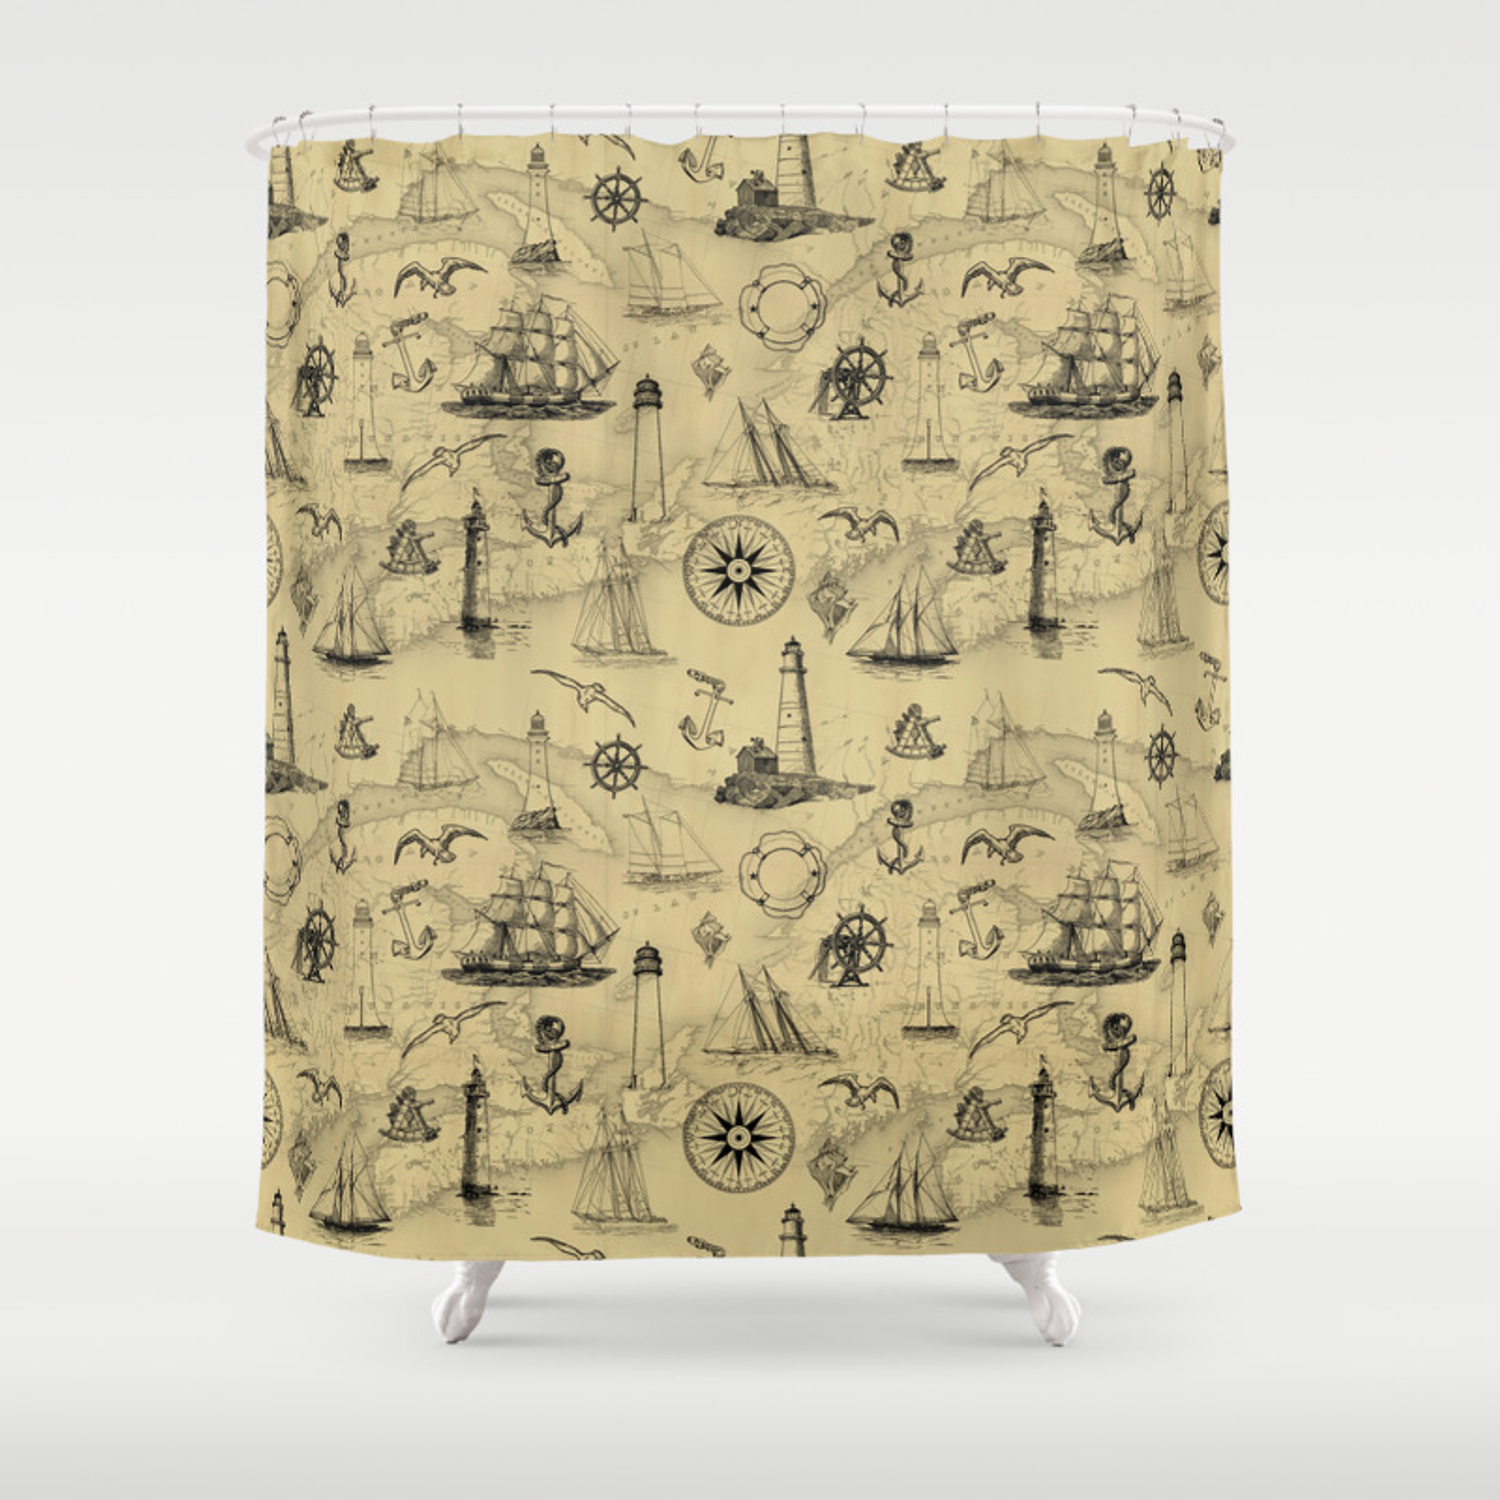 Old Map Background with Vintage Nautical Pattern Shower Curtain Old Map Background on magazine background, newspaper background, old nautical maps, paper background, wood background, old world cartography, key background, old wallpaper, bouquet background, old compass, old boats, old us highway maps, old treasure maps, space background, city background,